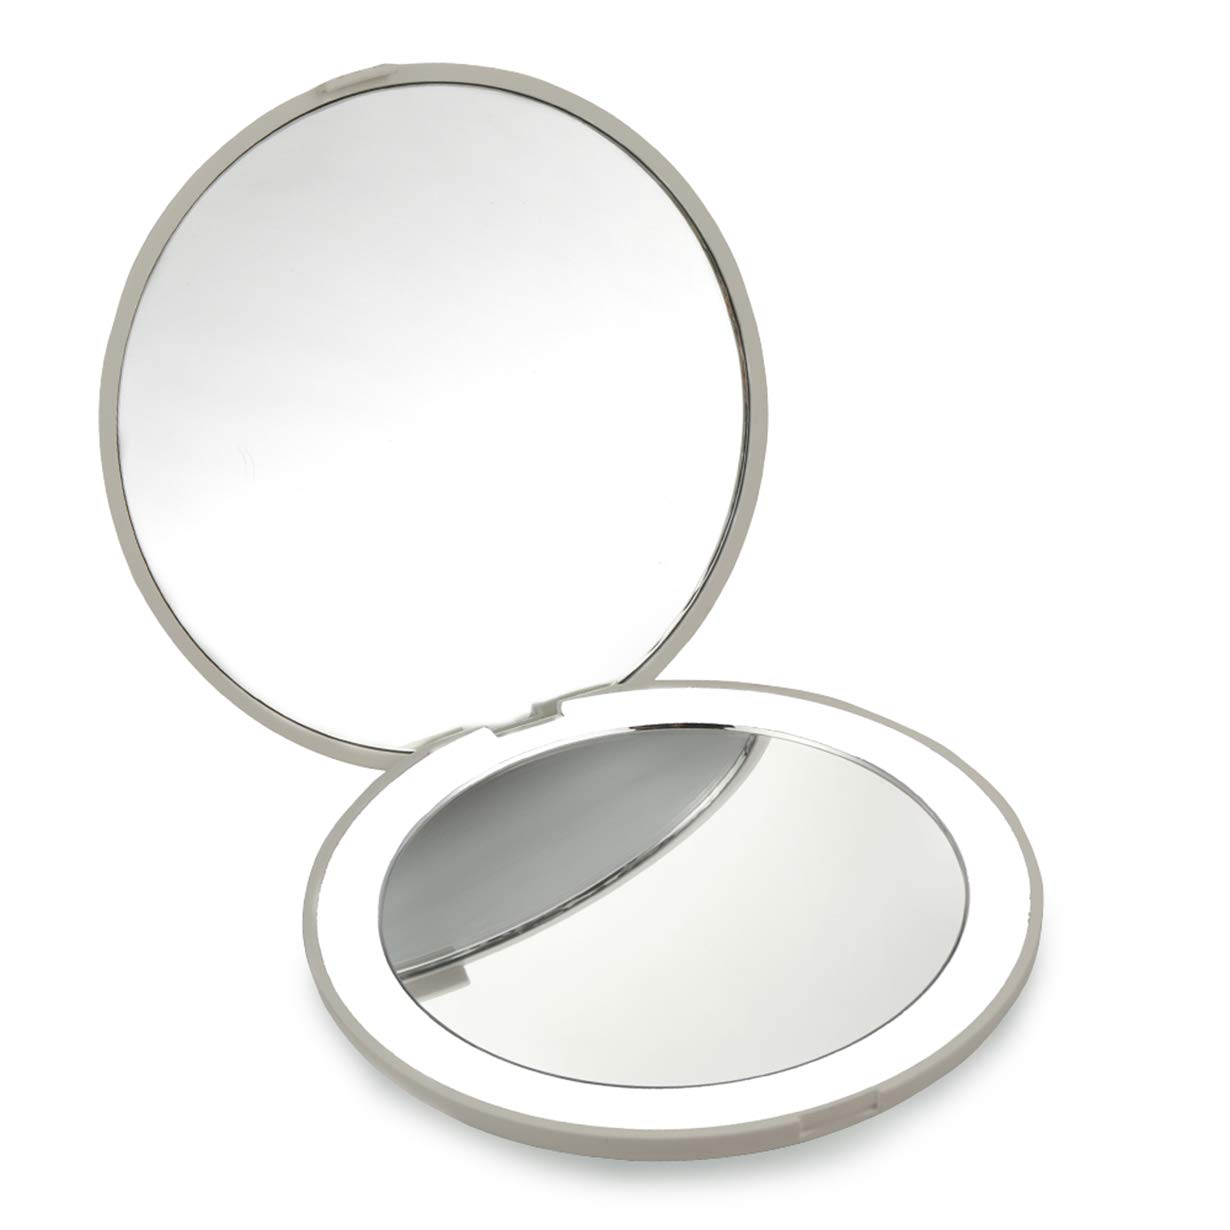 Best Compact Mirror- 10X MAGNIFYING Mirror with Light- Small Travel Mirror for Pocket- Portable LED Lighted Makeup Mirror, Foldable Compact Mirror 1X & 10X Magnification